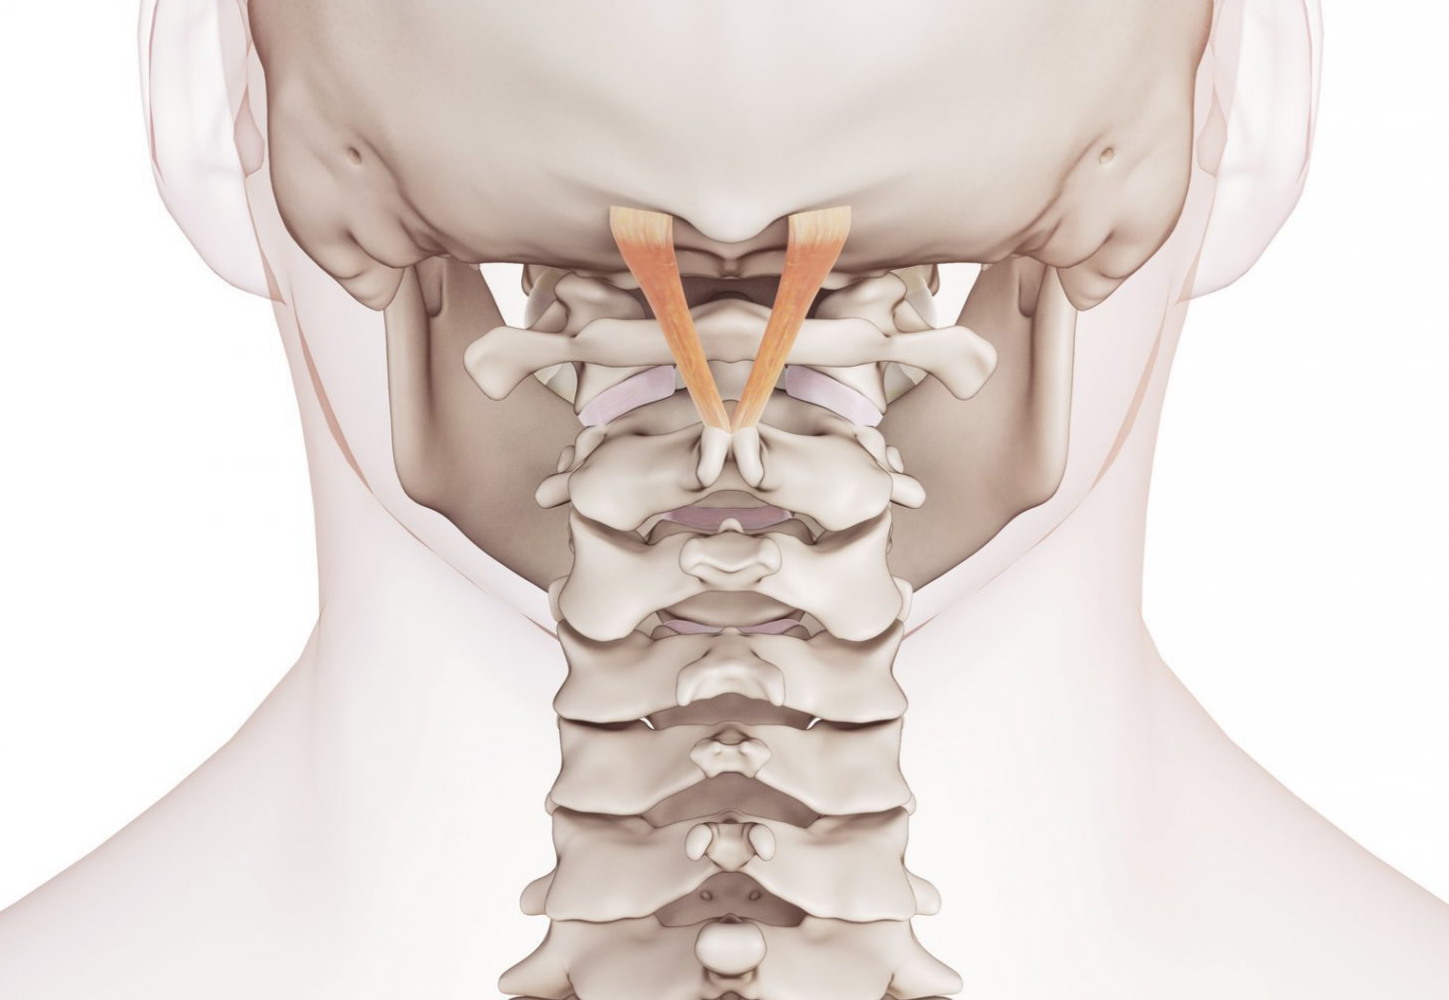 poterior_cervical_spine_picture_cropped.jpg